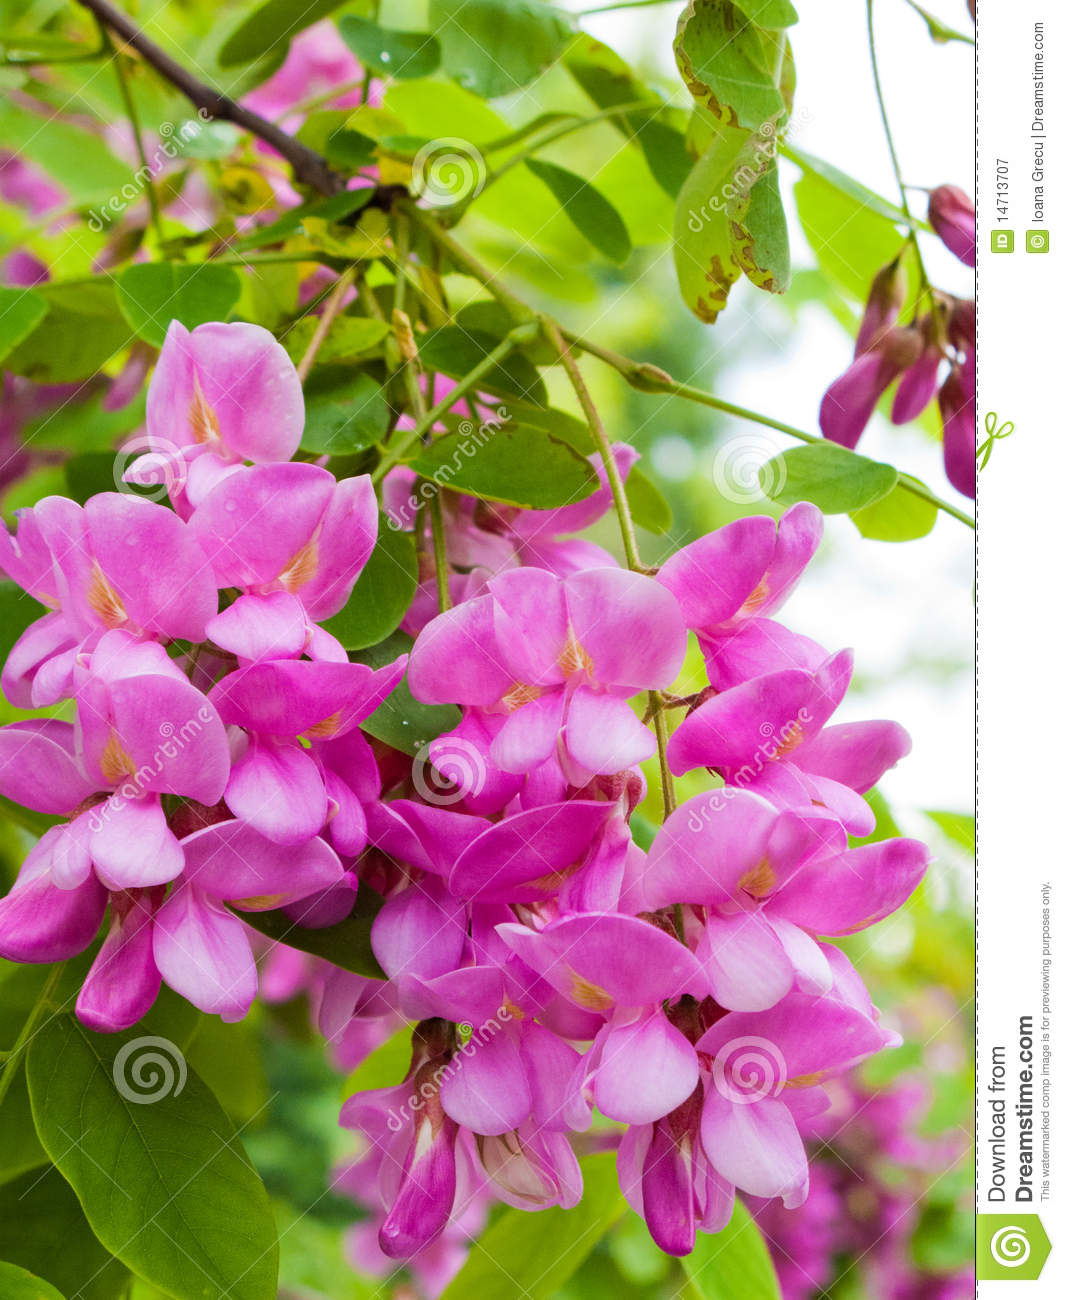 Pink robinia flowers stock image image of false blooms 14713707 pink robinia tree locust flowers close up mightylinksfo